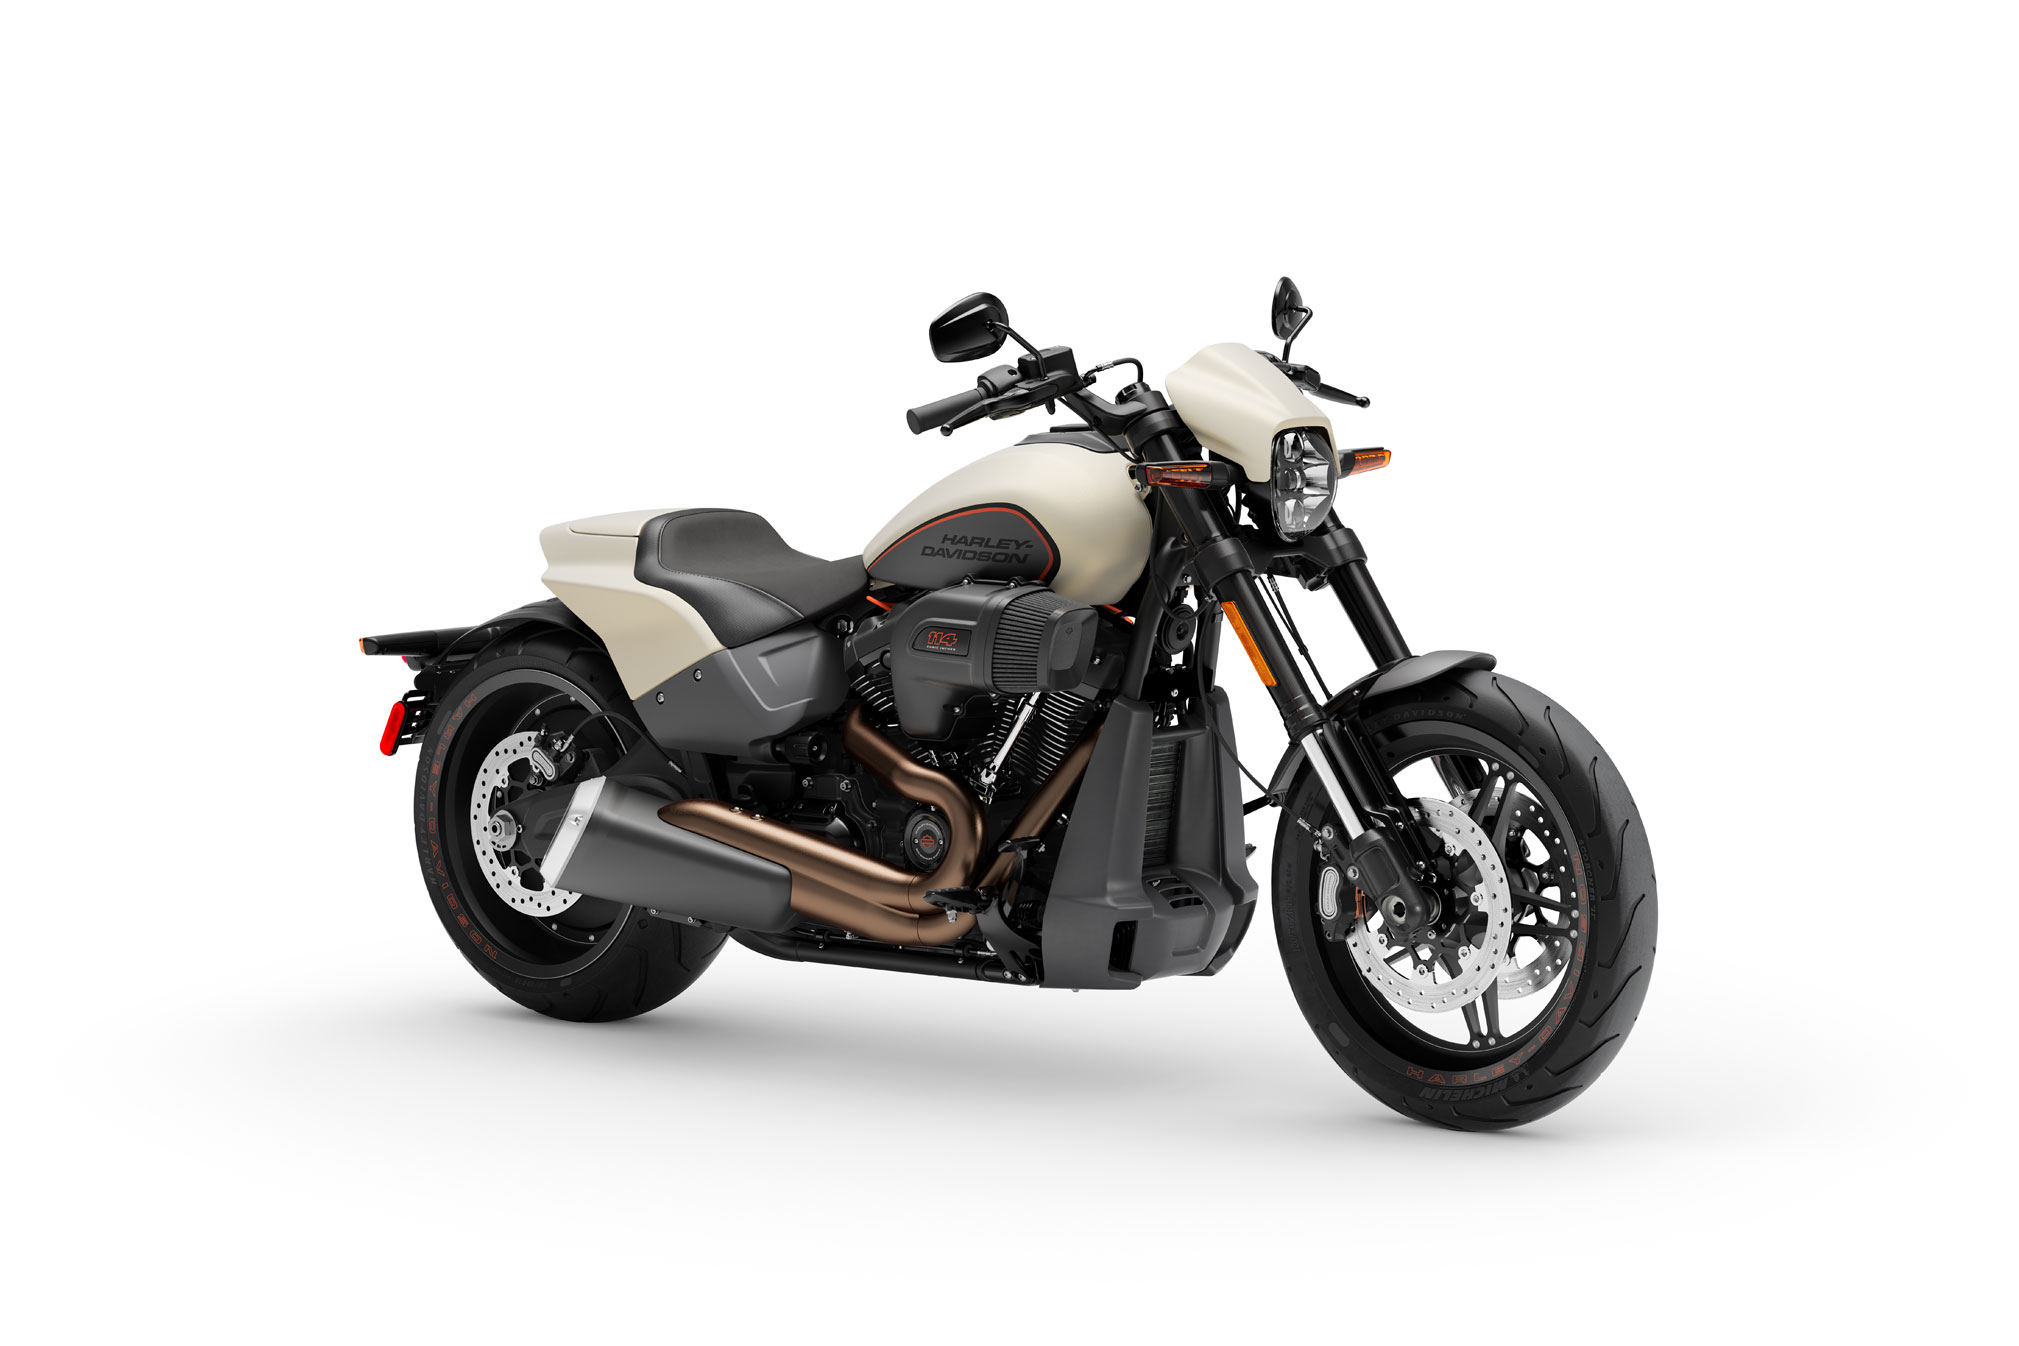 New 2019 Harley Davidson Fxdr 114 Motorcycles In: 2019 Harley-Davidson FXDR 114 Guide • Total Motorcycle